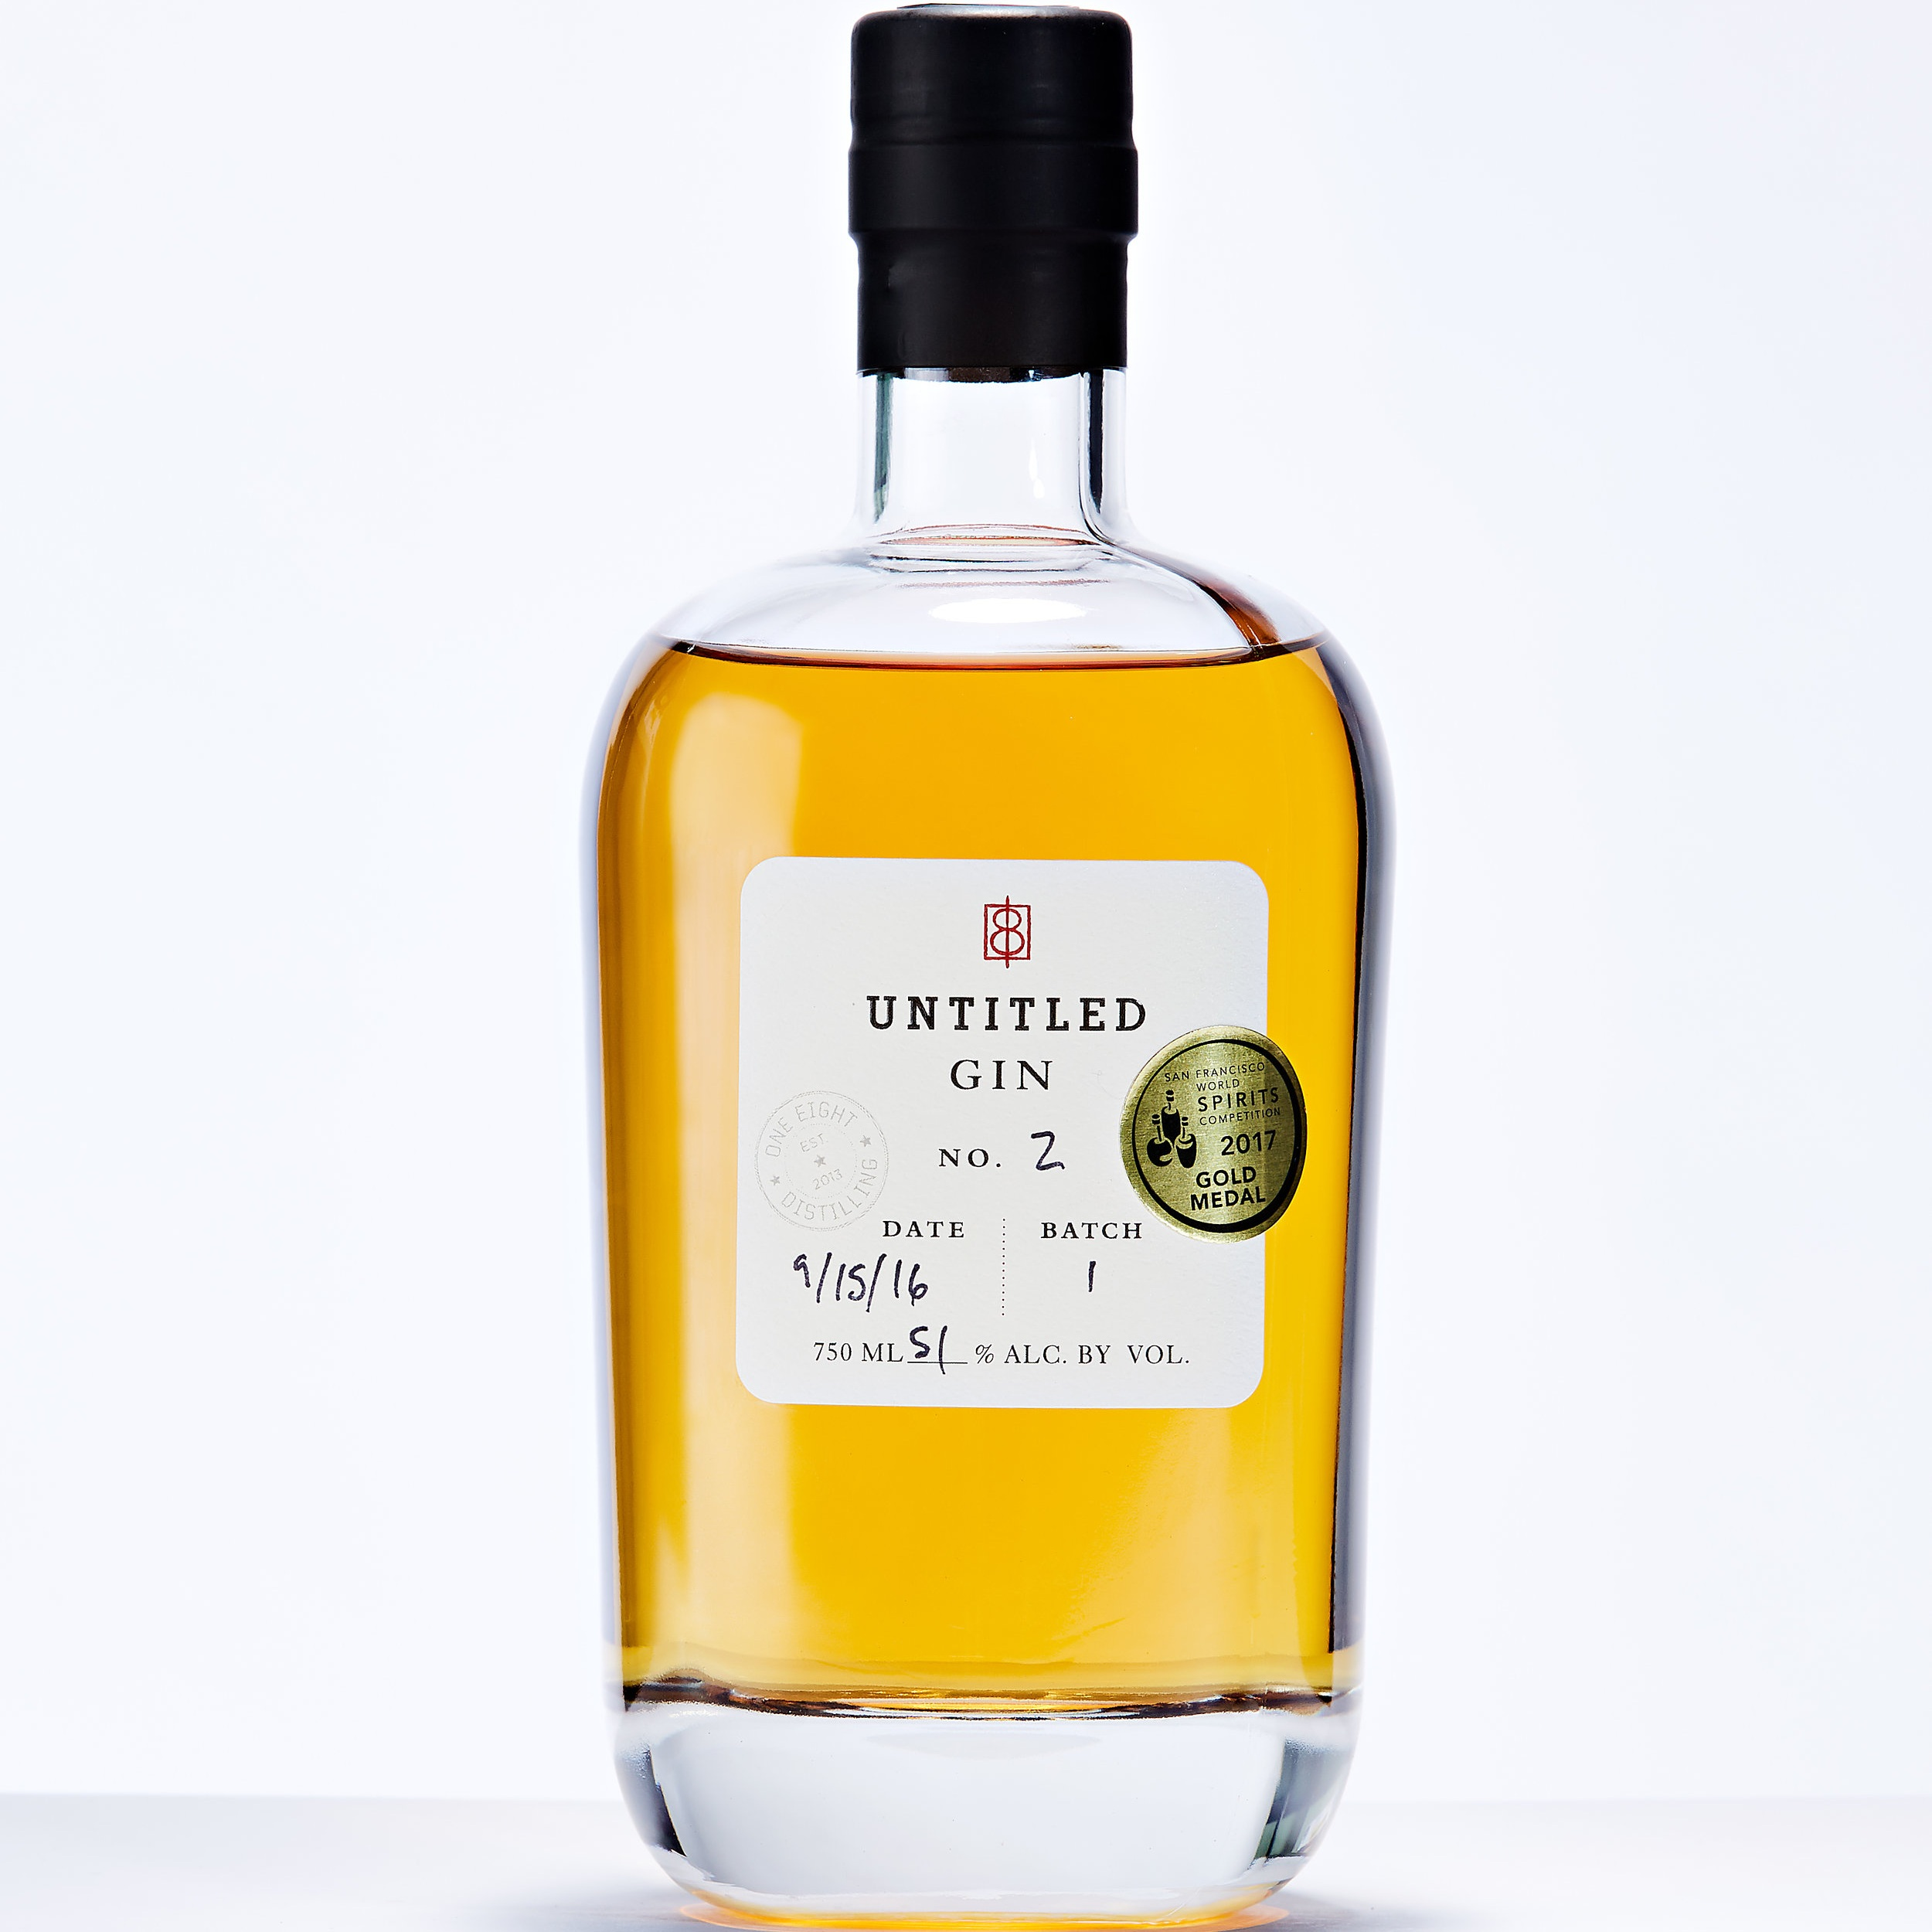 Untitled Gin Series - Untitled Gins are all distilled in house from eclectic combinations of botanicals and often have spent time undergoing barrel maturation. We have developed an extensive library of exotic aromatics over the years, and we delight in devising innovative new combinations for you to enjoy.